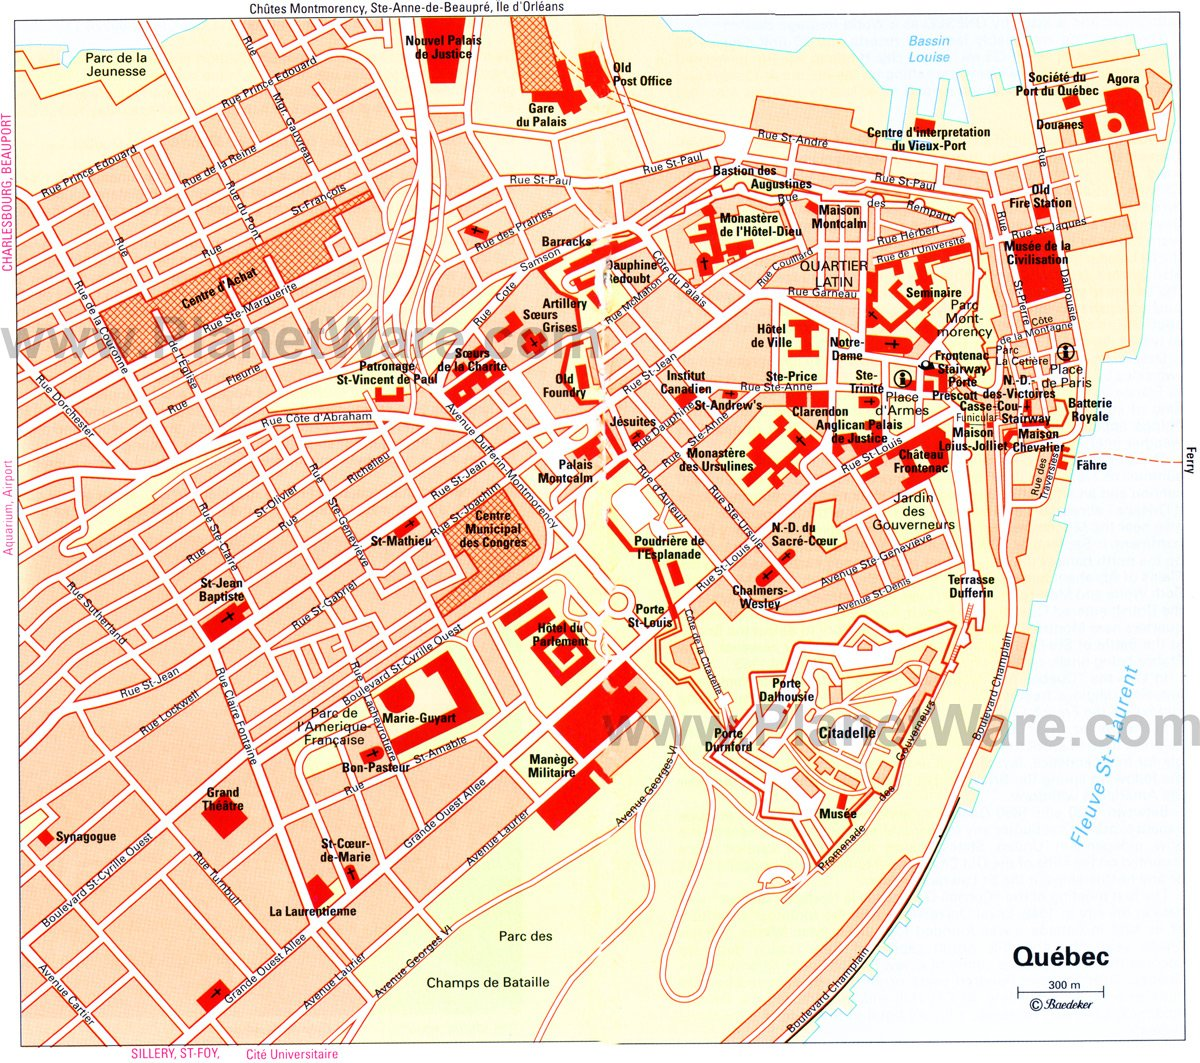 14 TopRated Tourist Attractions in Quebec City – Map of Tourist Attractions in Paris